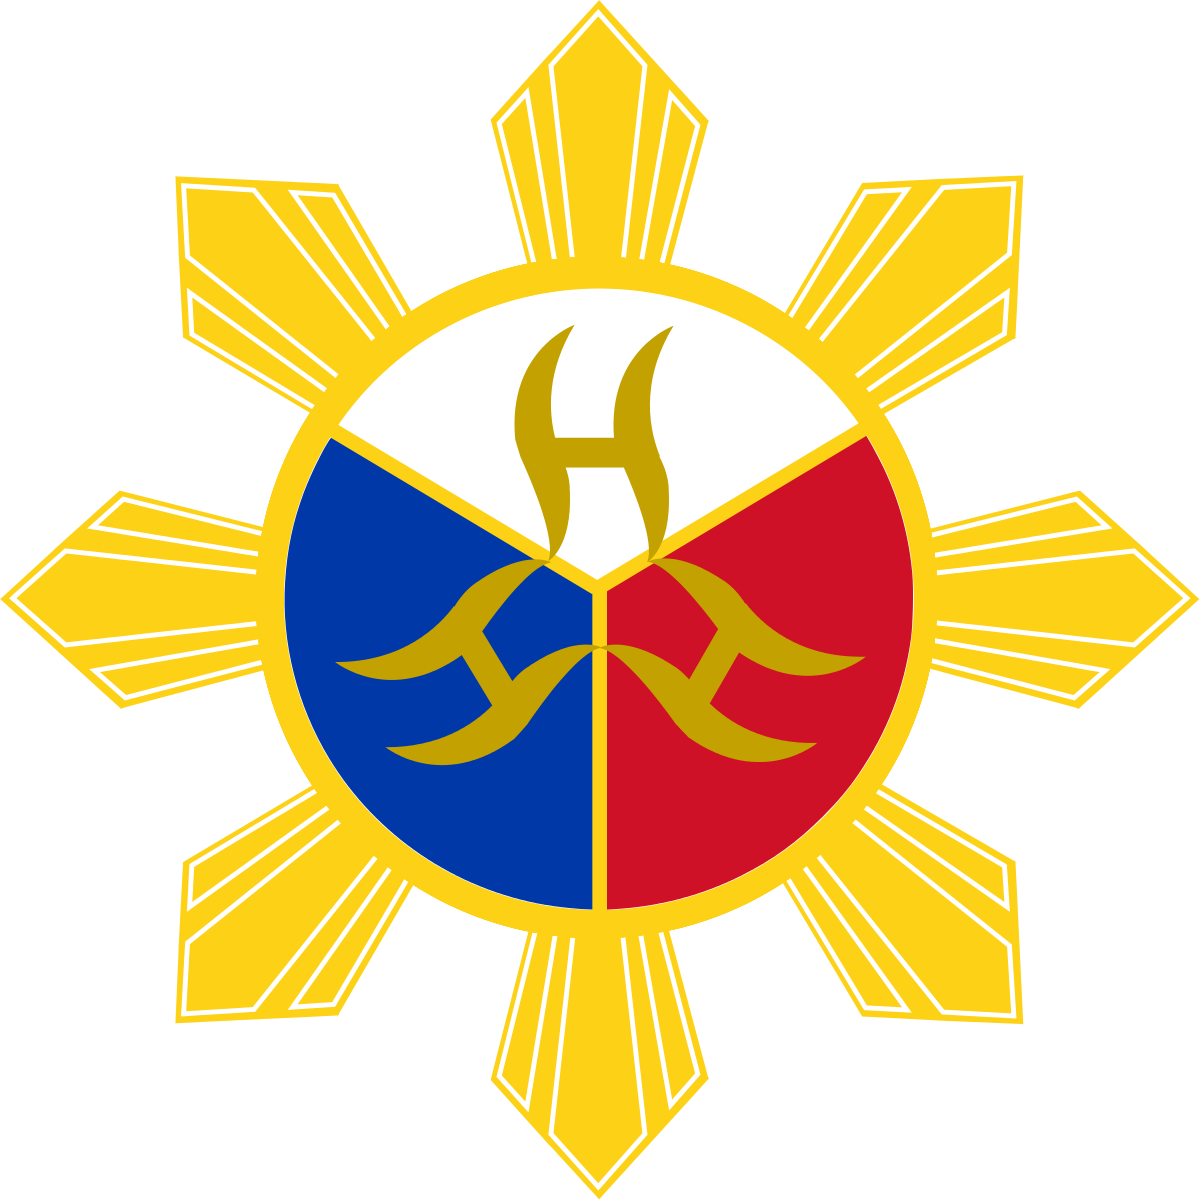 Respect clipart symbol filipino. National artists